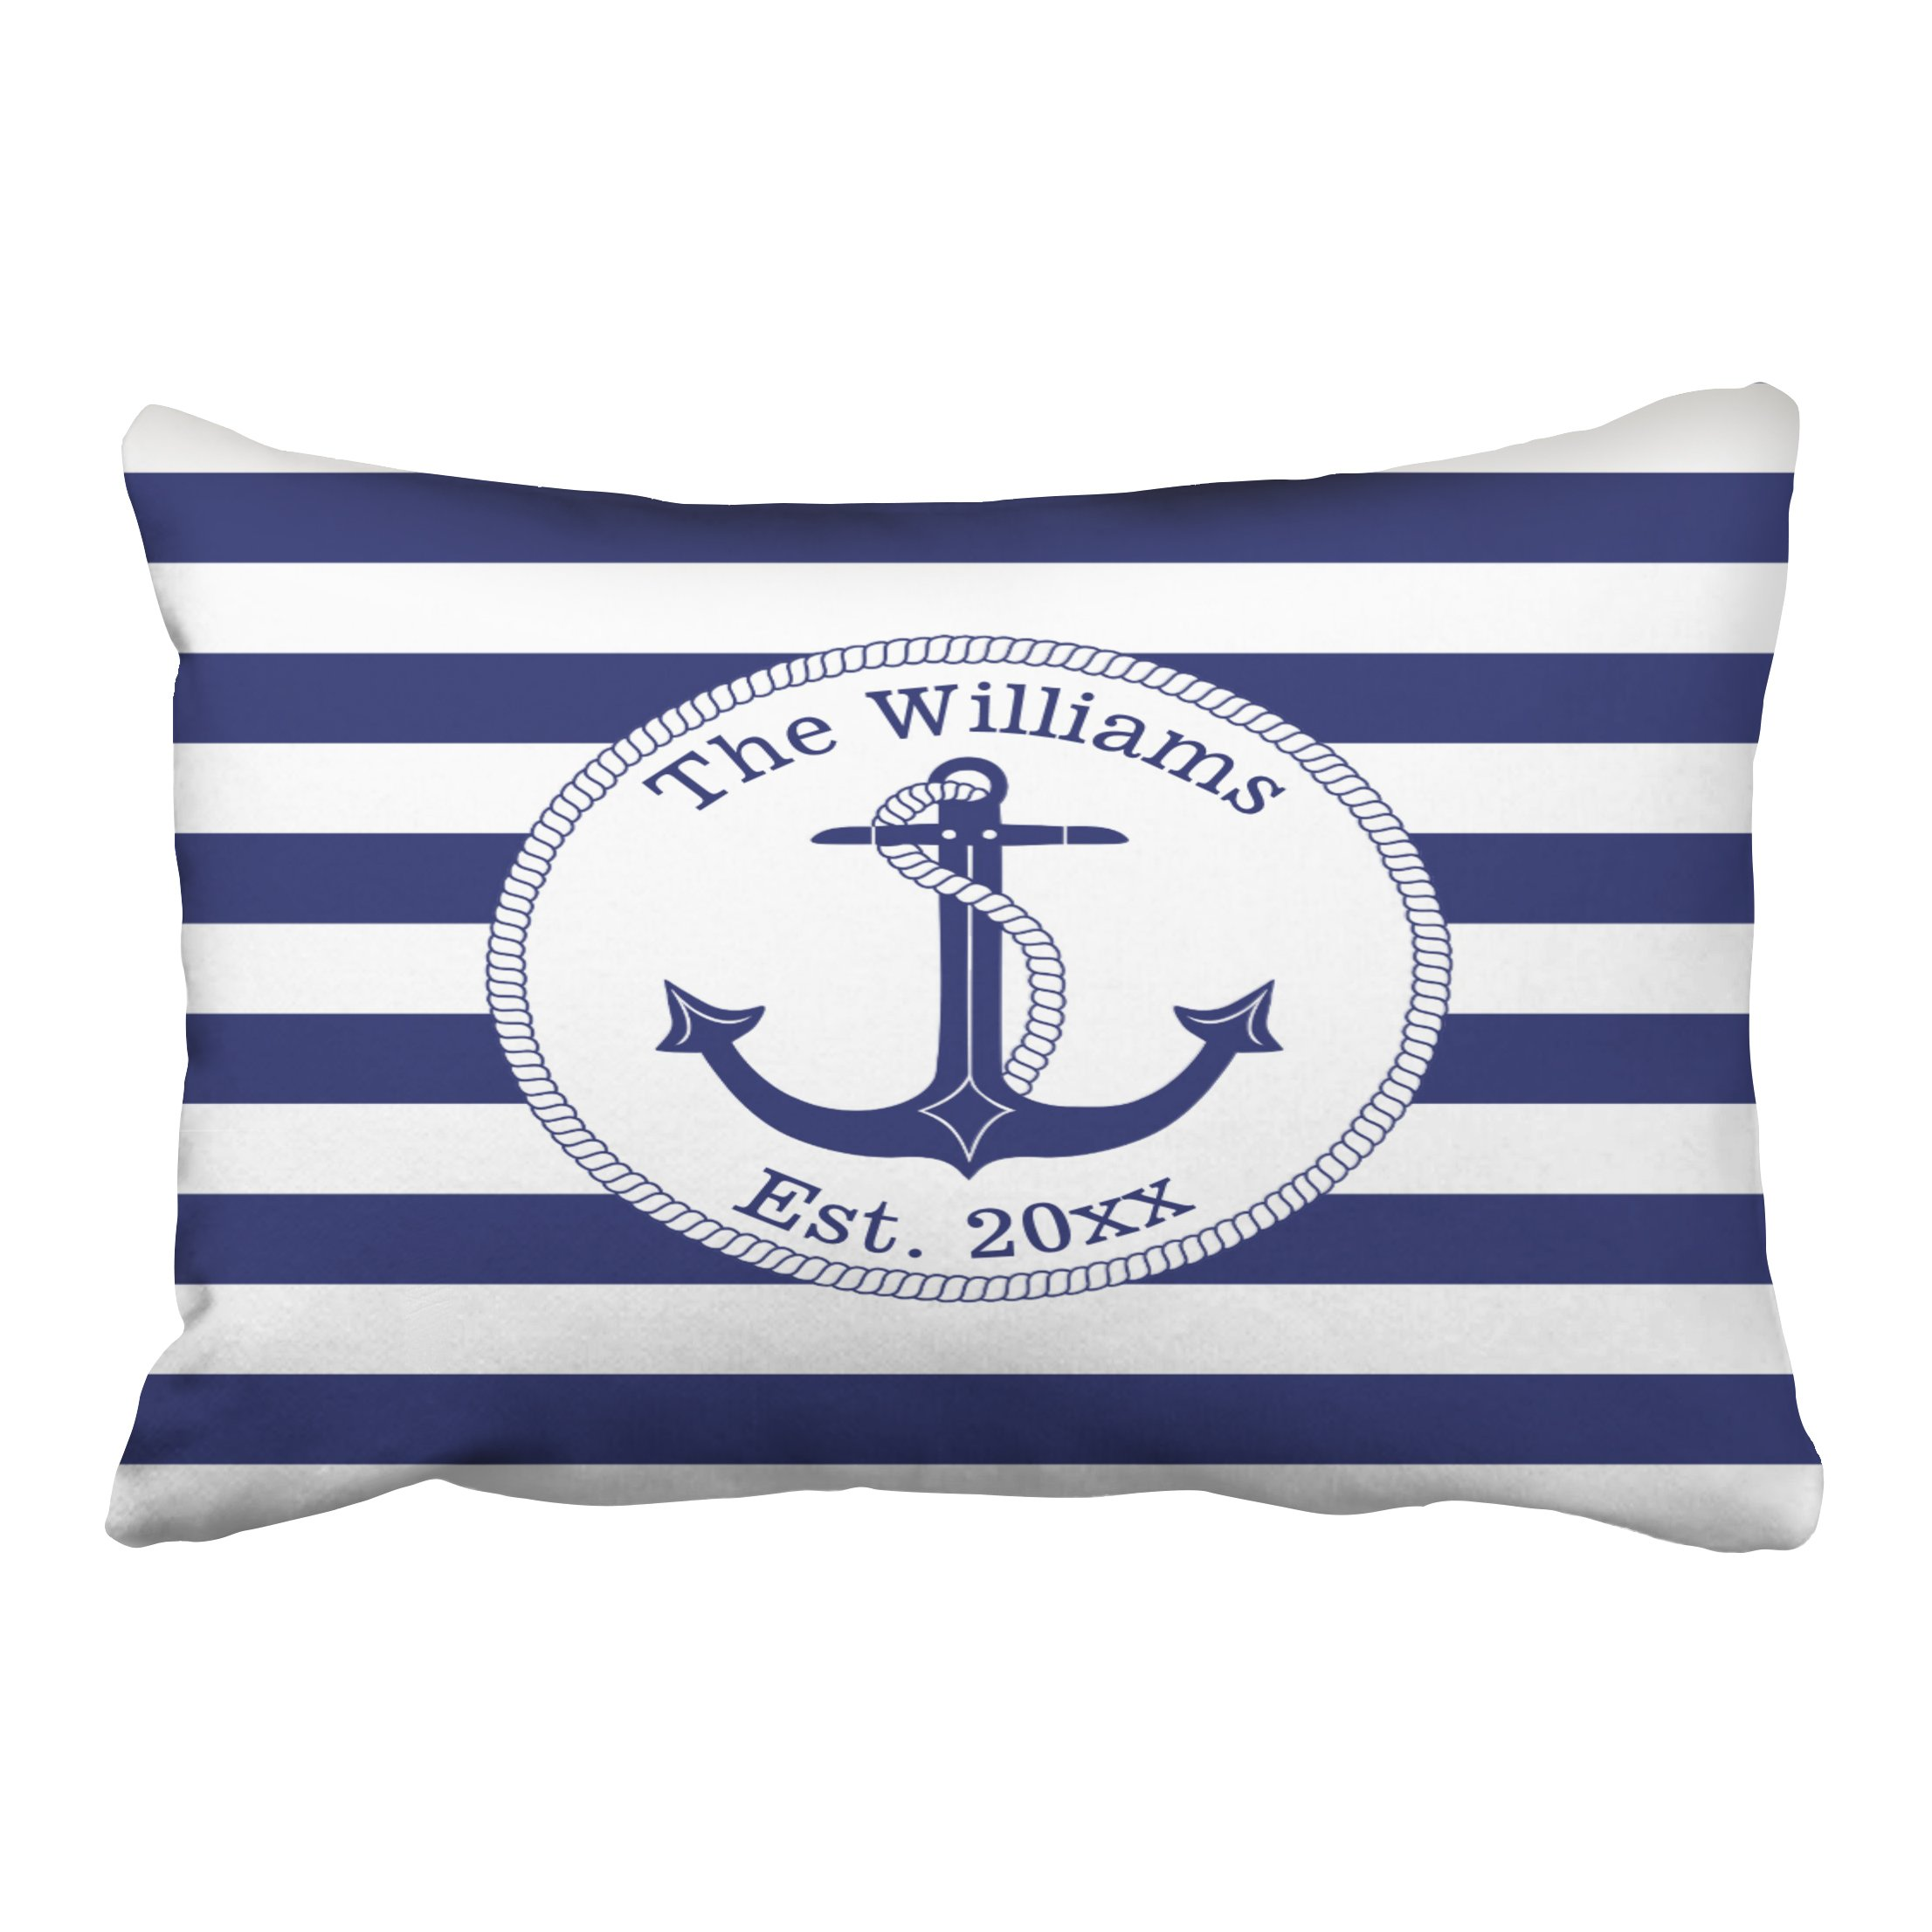 Accrocn Pillowcases Nautical Anchor Navy Blue Stripes Family Name Outdoor Customizable Cushion Decorative Pillowcase Polyester 20 x 30 Inch Rectangl Queen Size Pillow Covers With Hidden Zipper